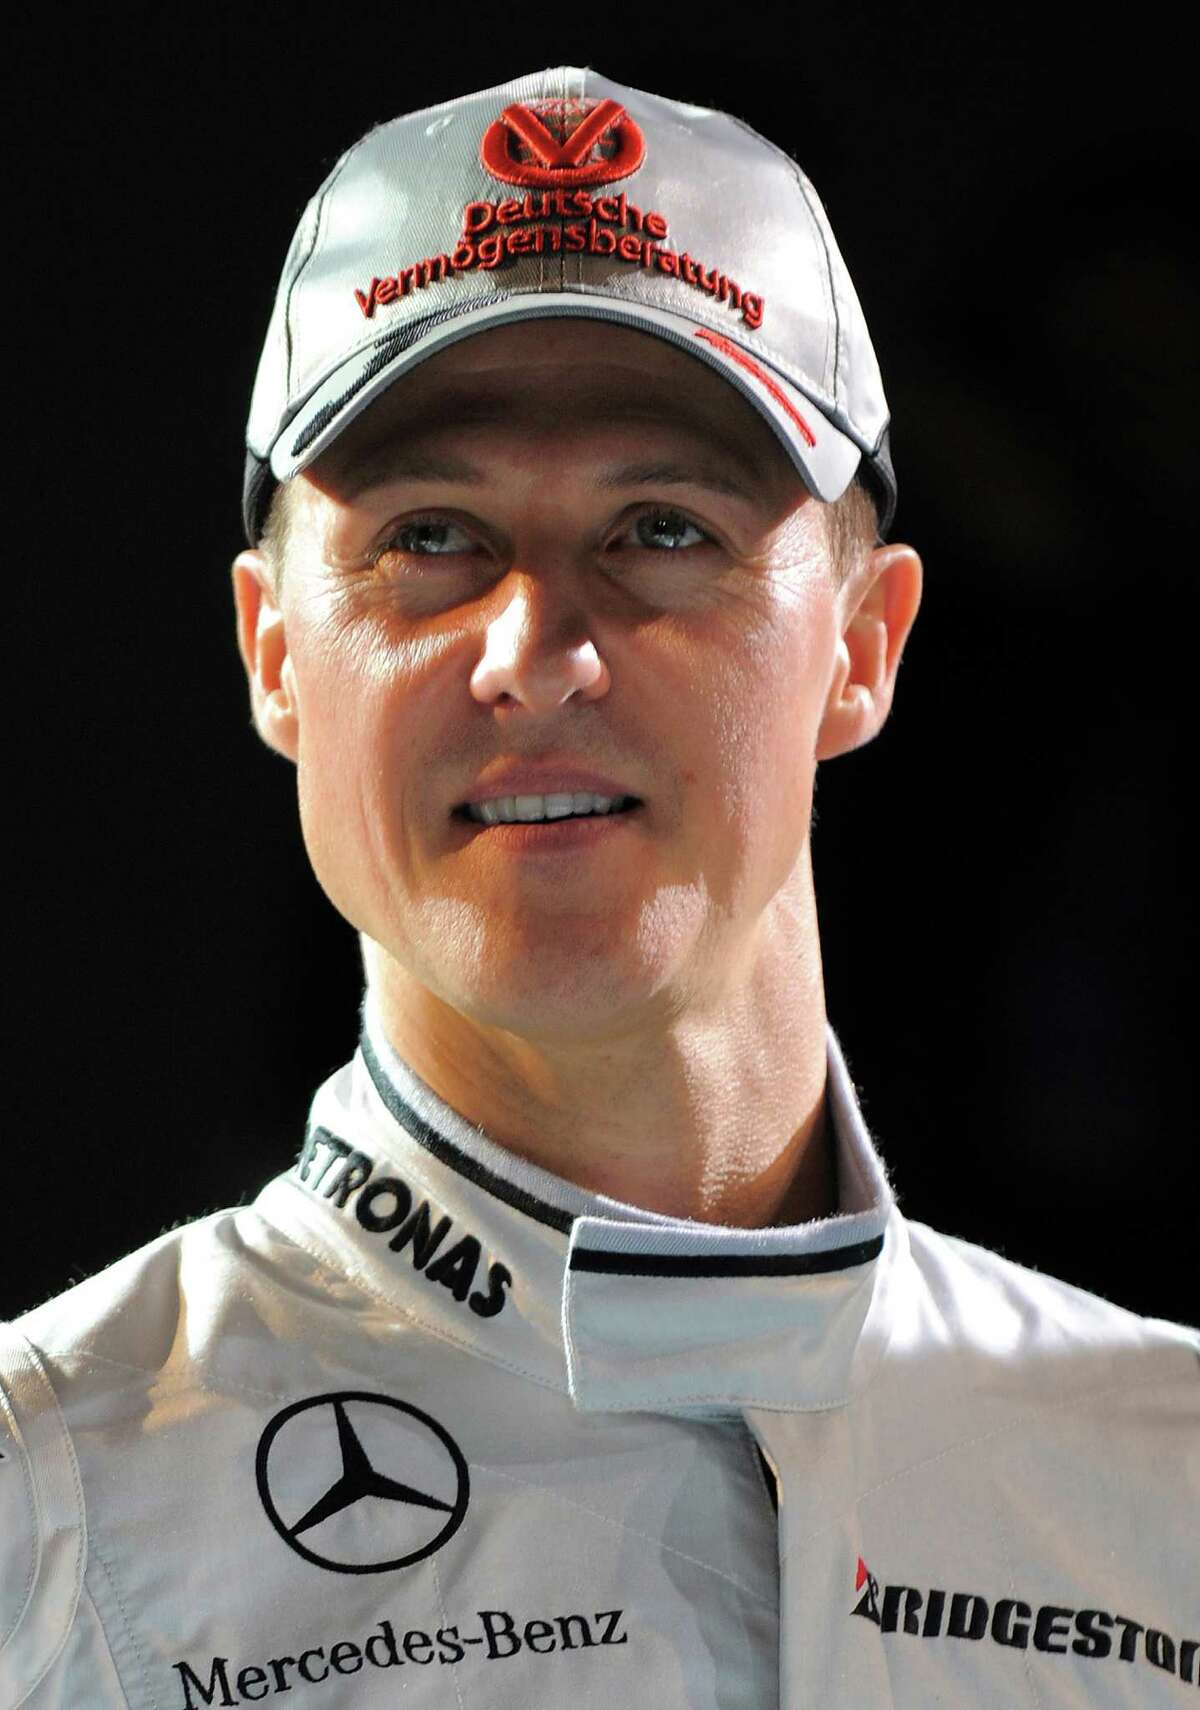 German seven-time world champion Michael Schumacher poses during the presentation of the new Mercedes GP Petronas Formula 1 team, at the Mercedes Museum in Stuttgart, southern Germany, on January 25, 2010. Having retired in 2006, the 41-year-old broke his three-year hiatus to sign a three-year contract to race for Mercedes GP and reunite with Ross Brawn, the man who orchestrated all of his world drivers' championship titles. AFP PHOTO / Patrick HERTZOG (Photo credit should read PATRICK HERTZOG/AFP/Getty Images)